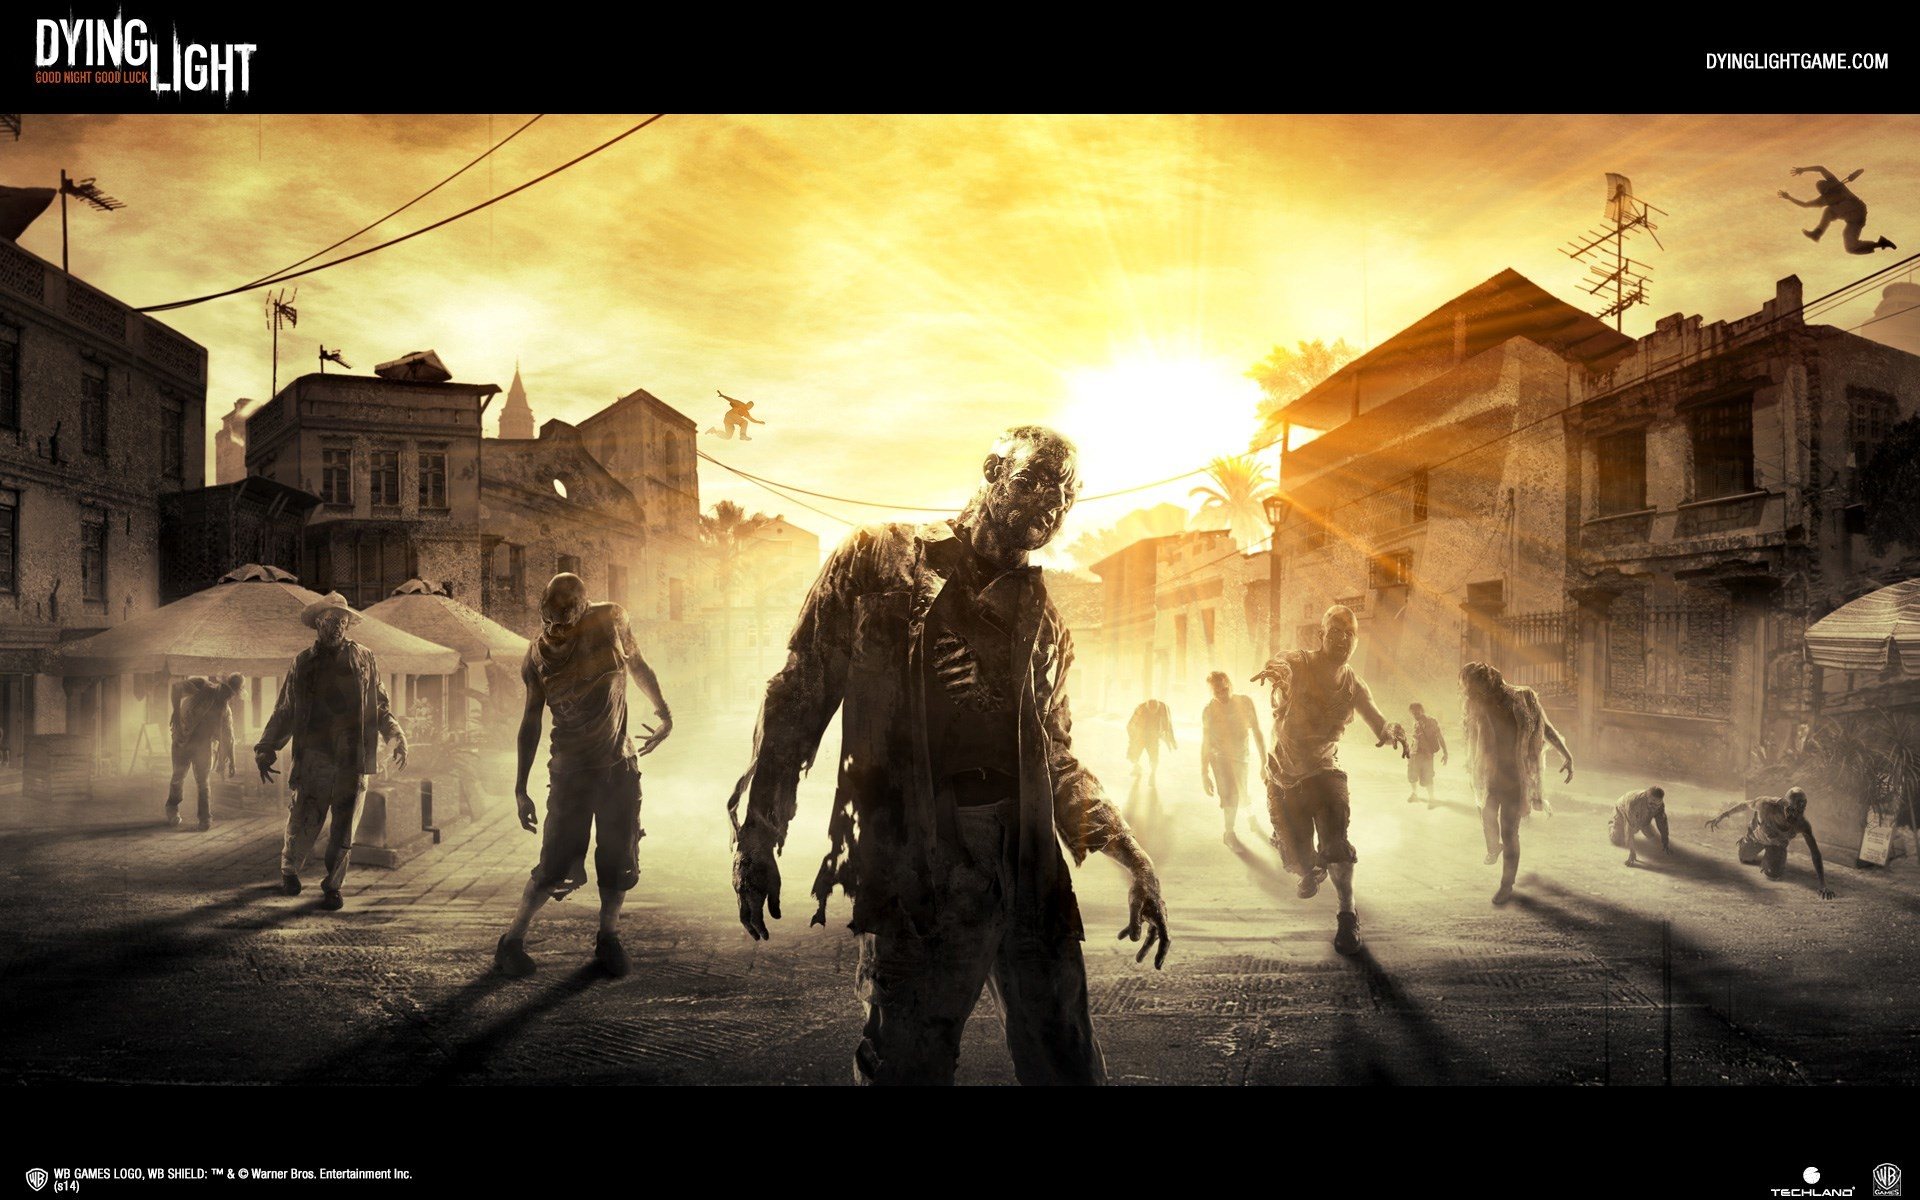 Dying Light Wallpaper 1080p (95+ Images